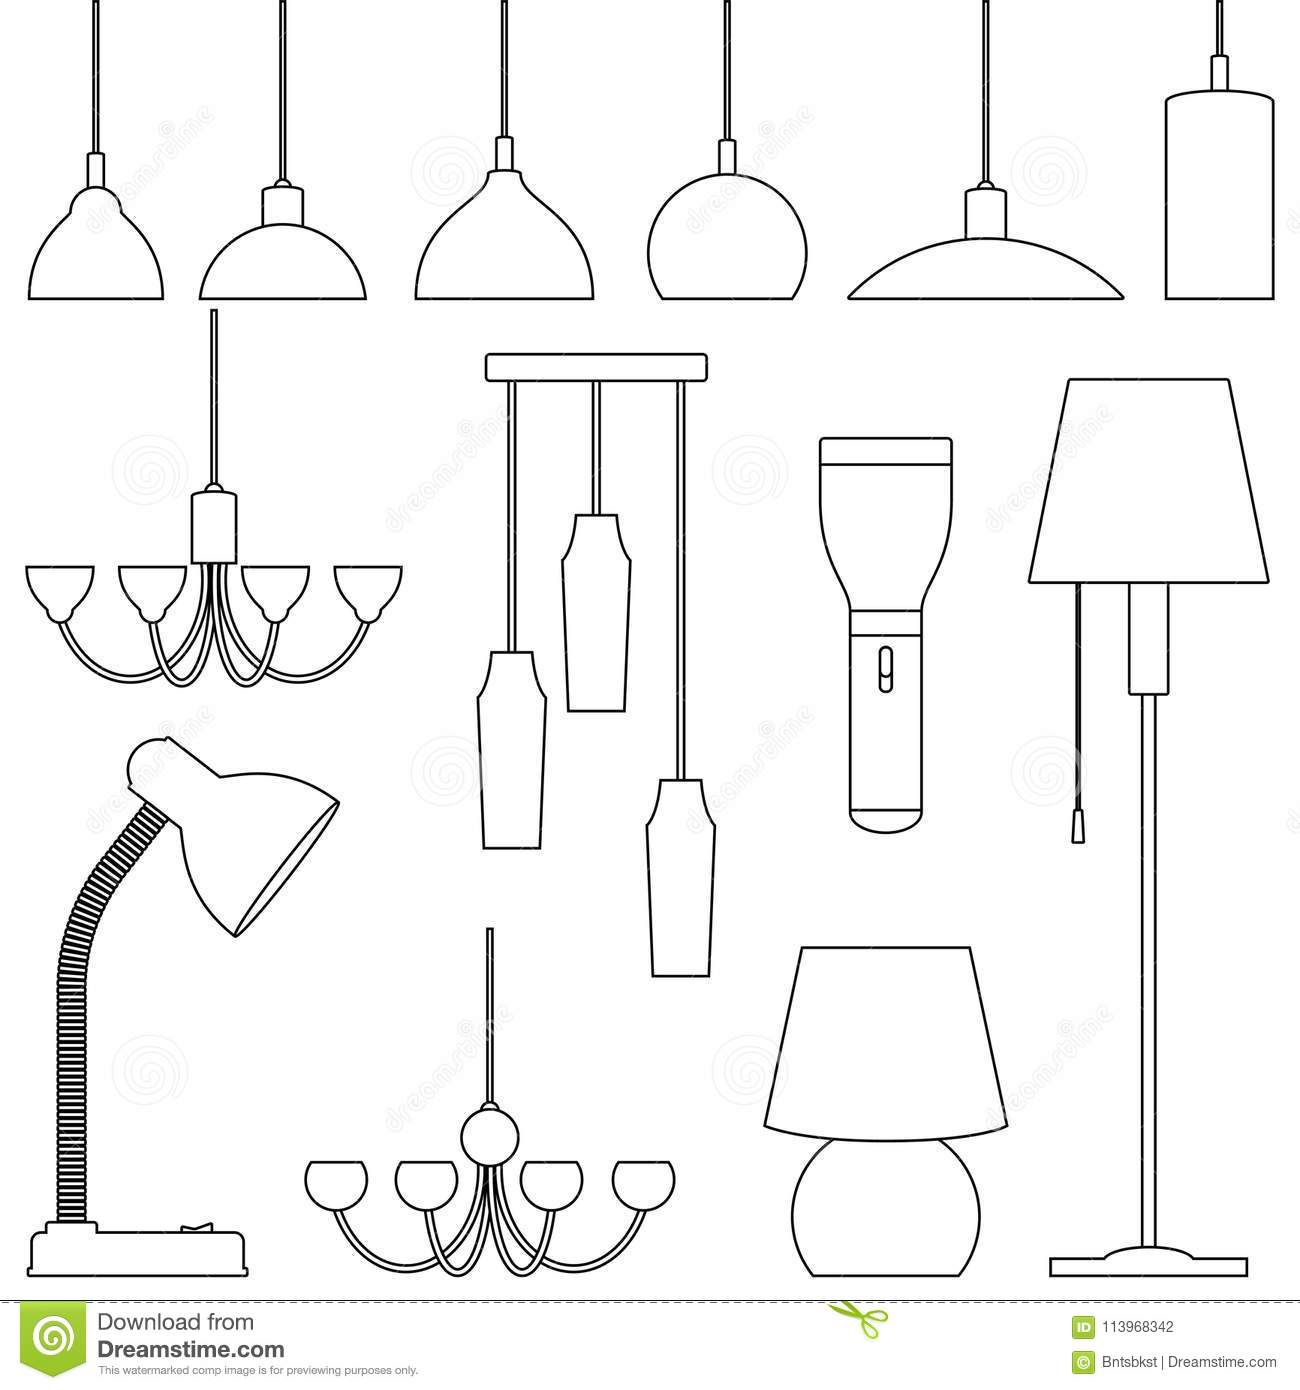 Lamps of different types set chandeliers lamps bulbs table lamp lamps of different types set chandeliers lamps bulbs table lamp flashlight floor lamp elements of modern interior line art illustration arubaitofo Image collections